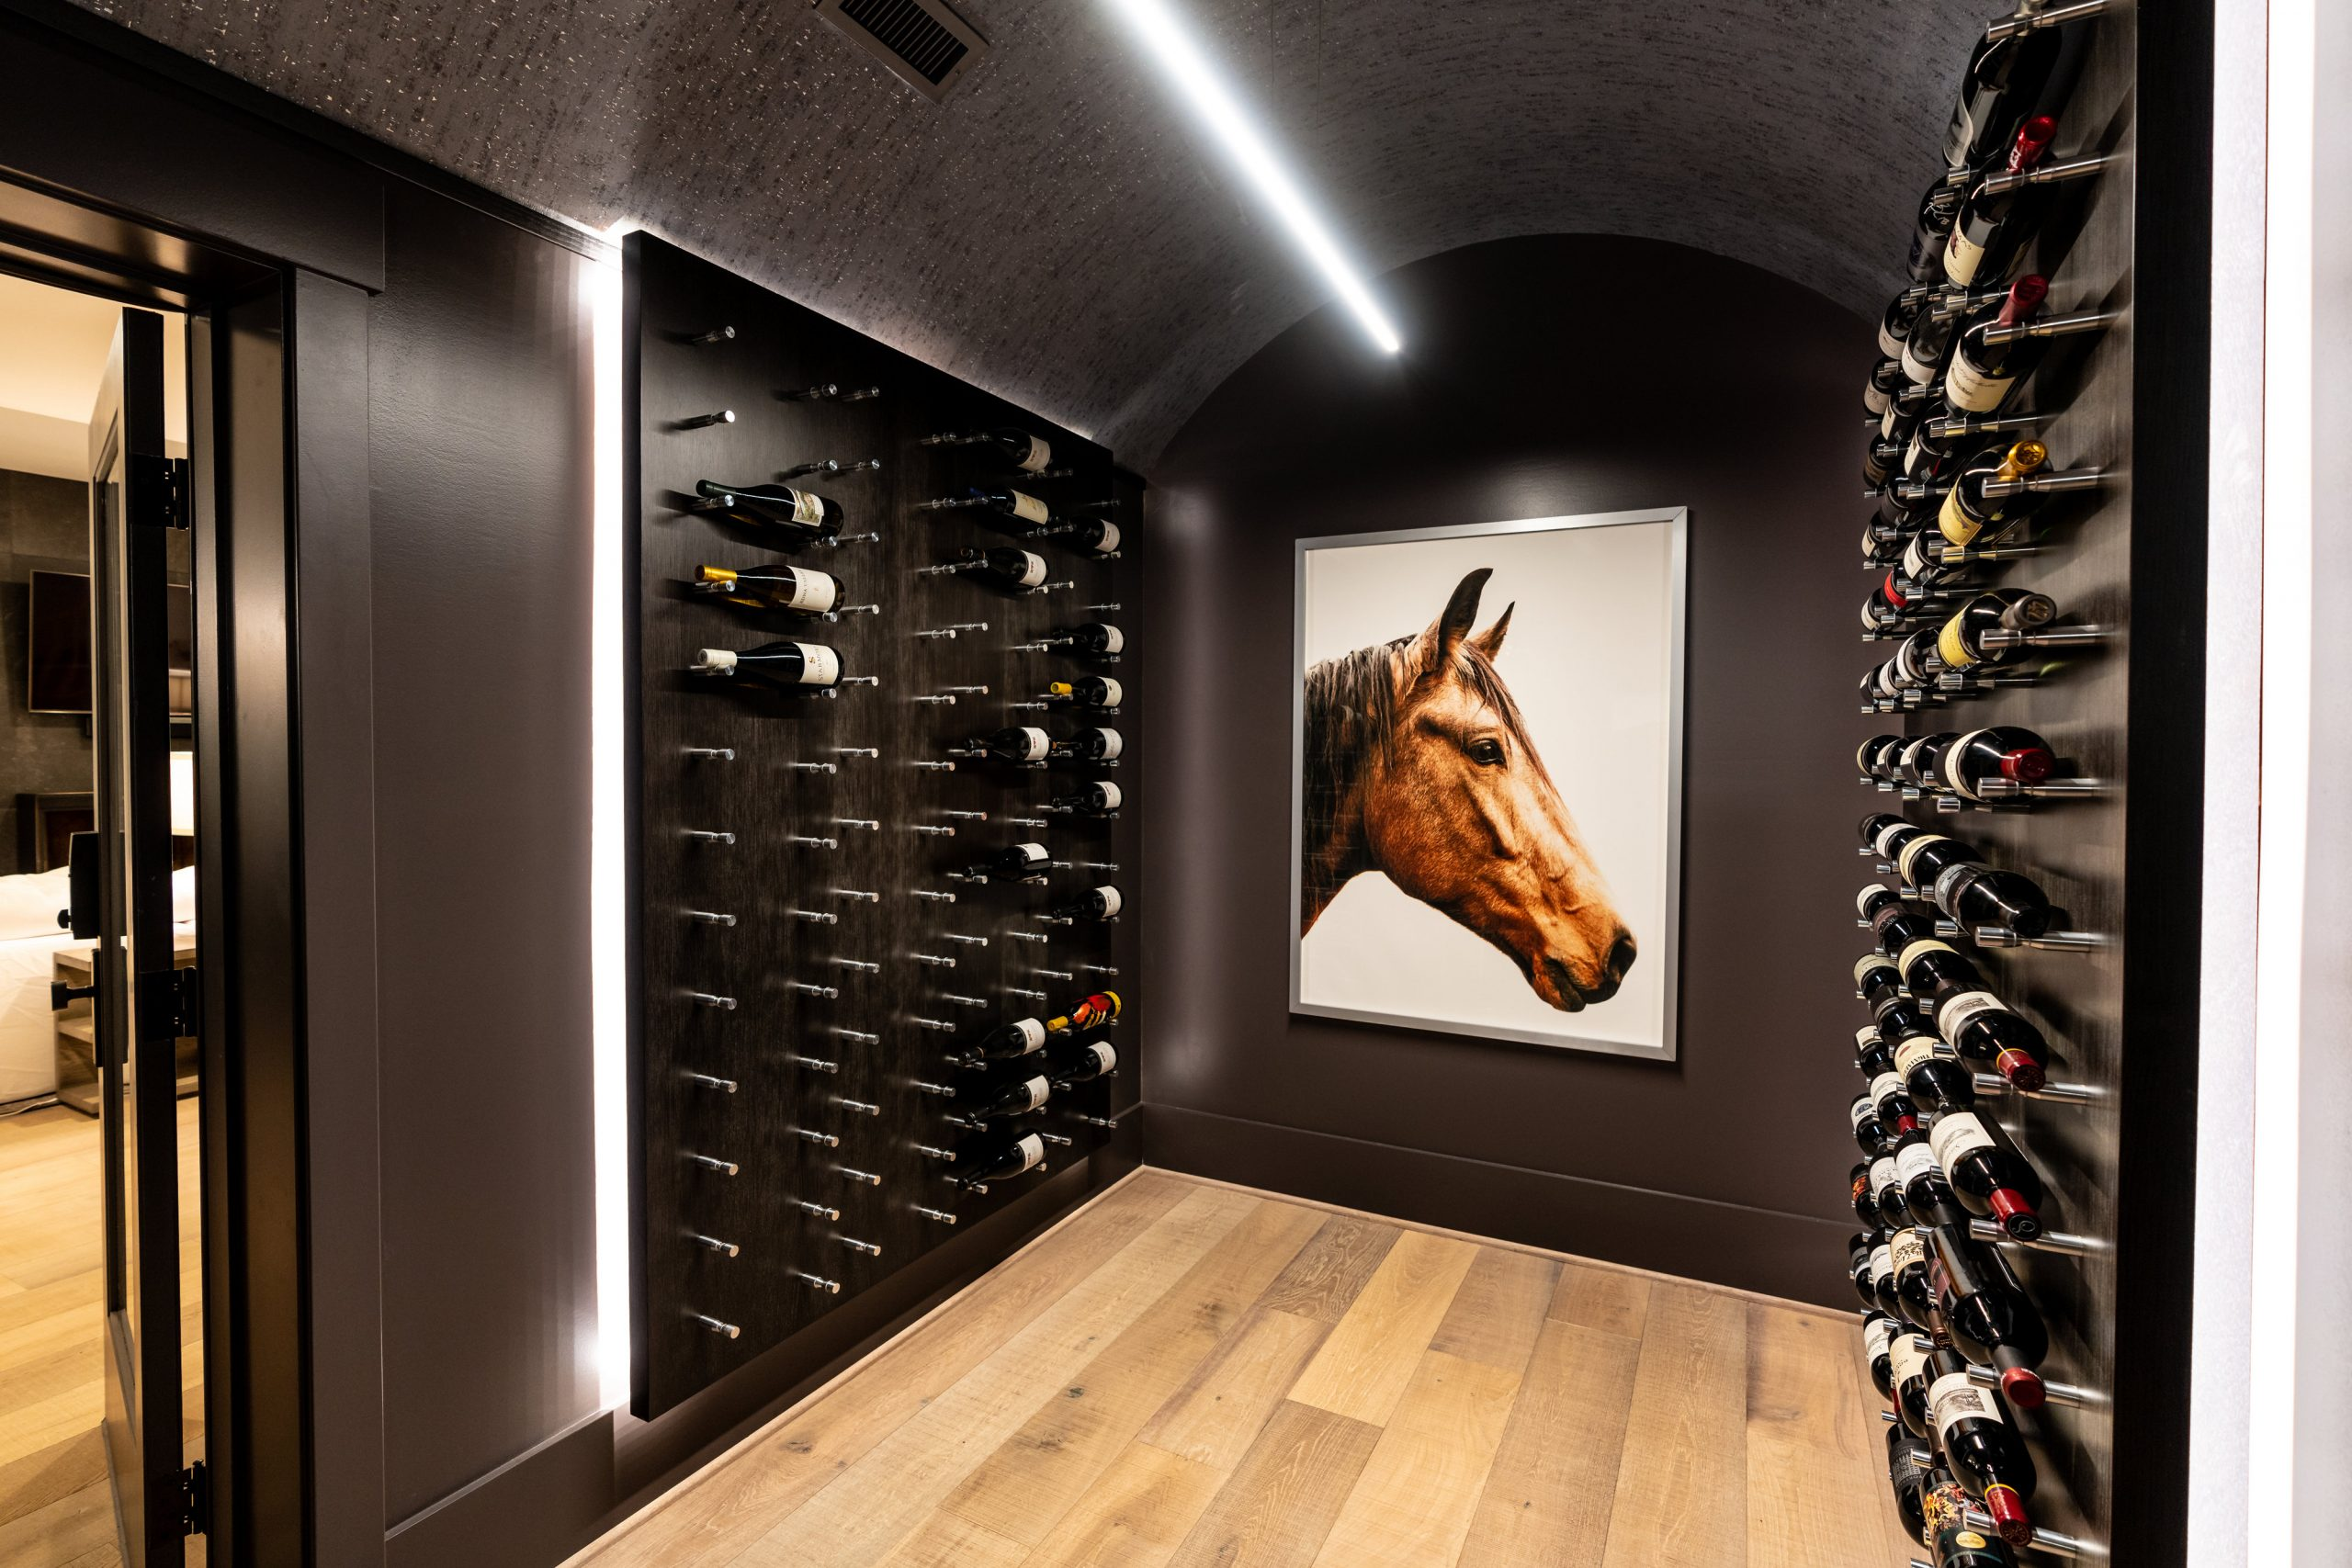 walk in wine cellar designed by The Jones Studio